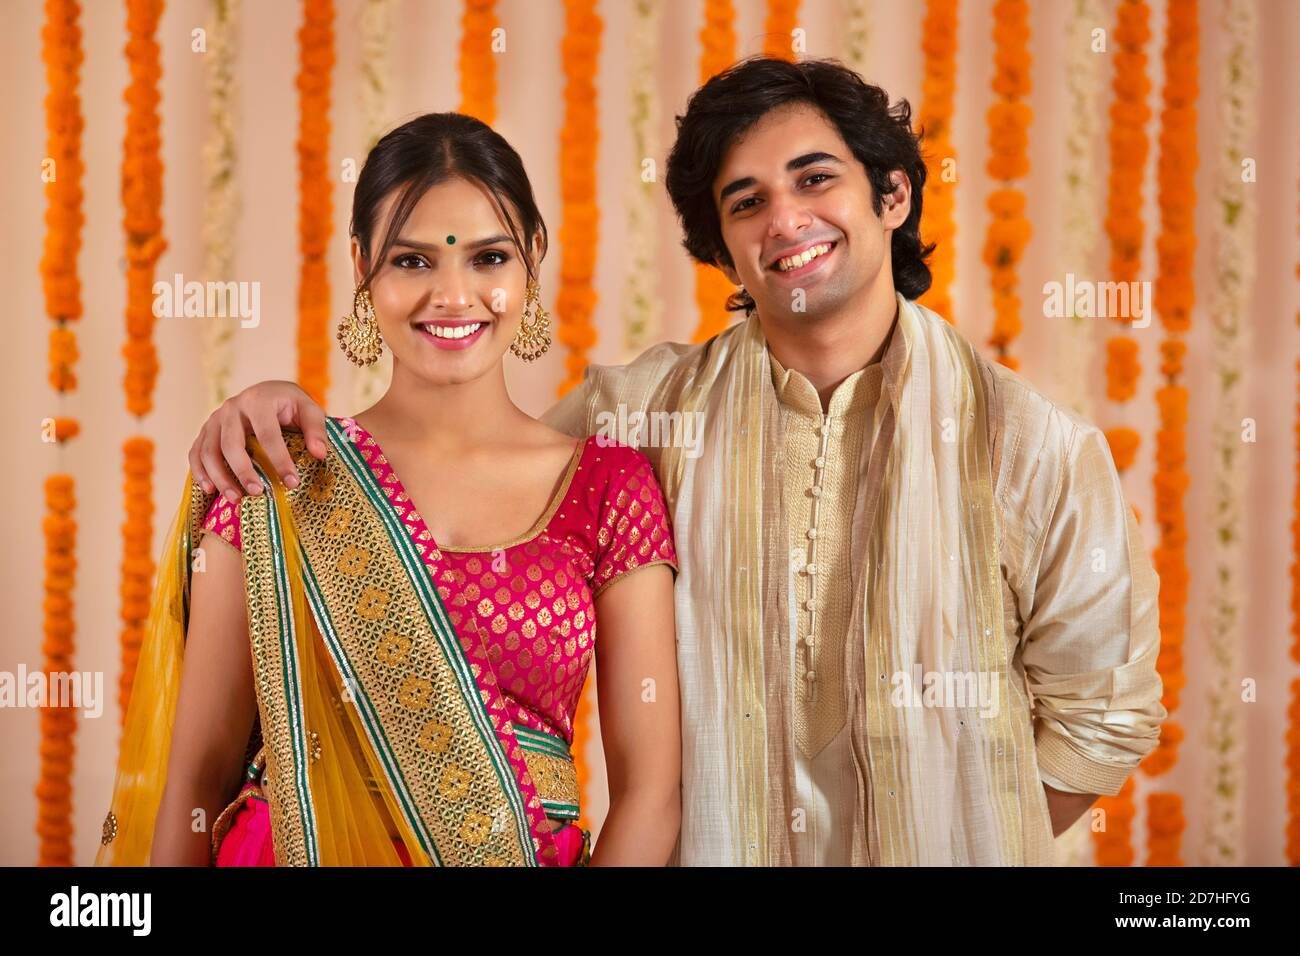 Young Couple Happily Posing Together In Traditional Wear For Diwali Stock Photo Alamy